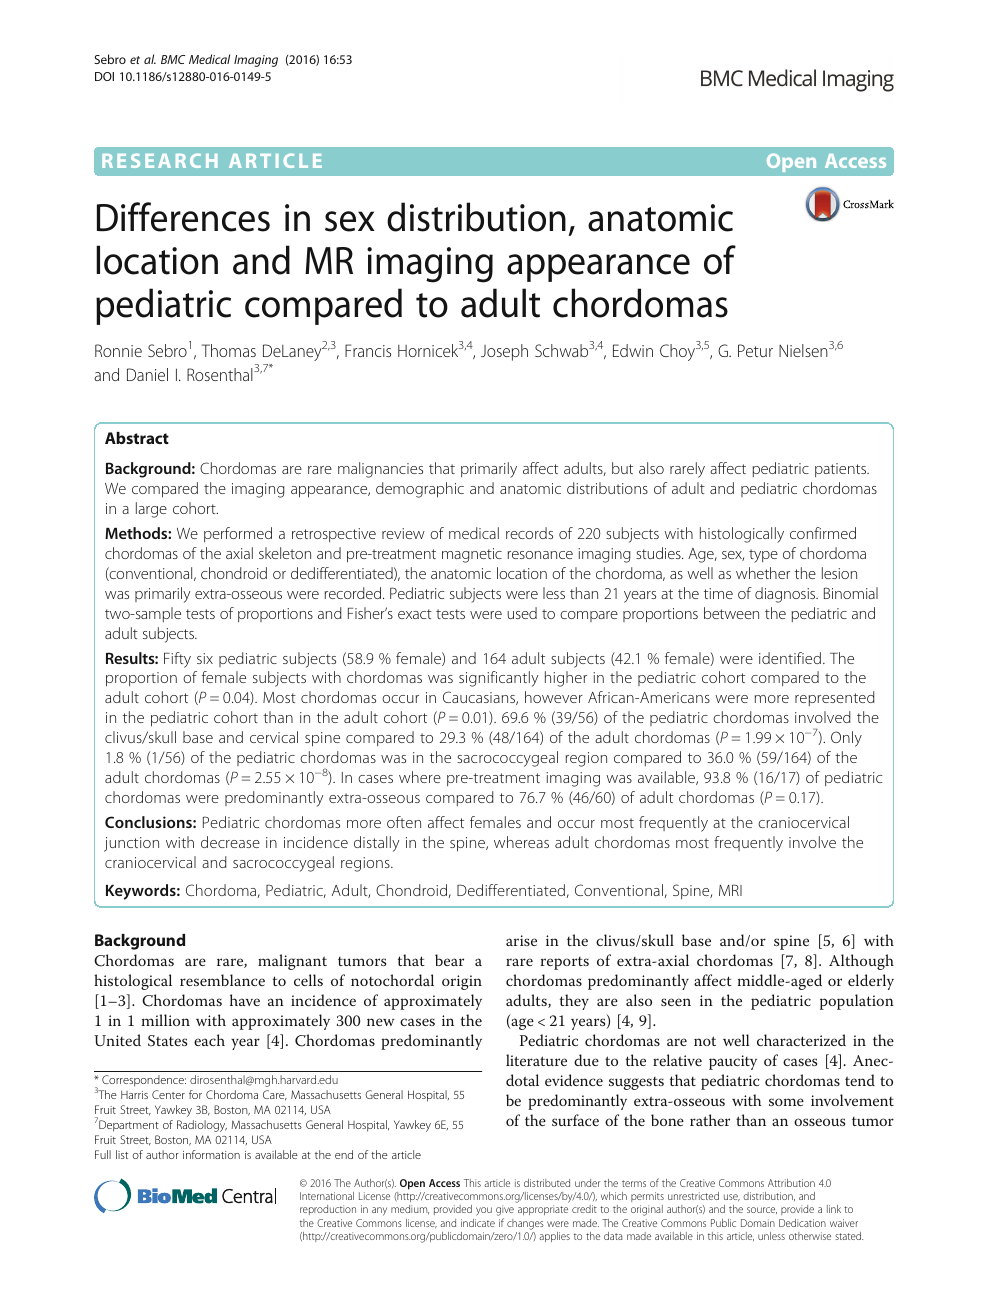 Differences in sex distribution, anatomic location and MR imaging